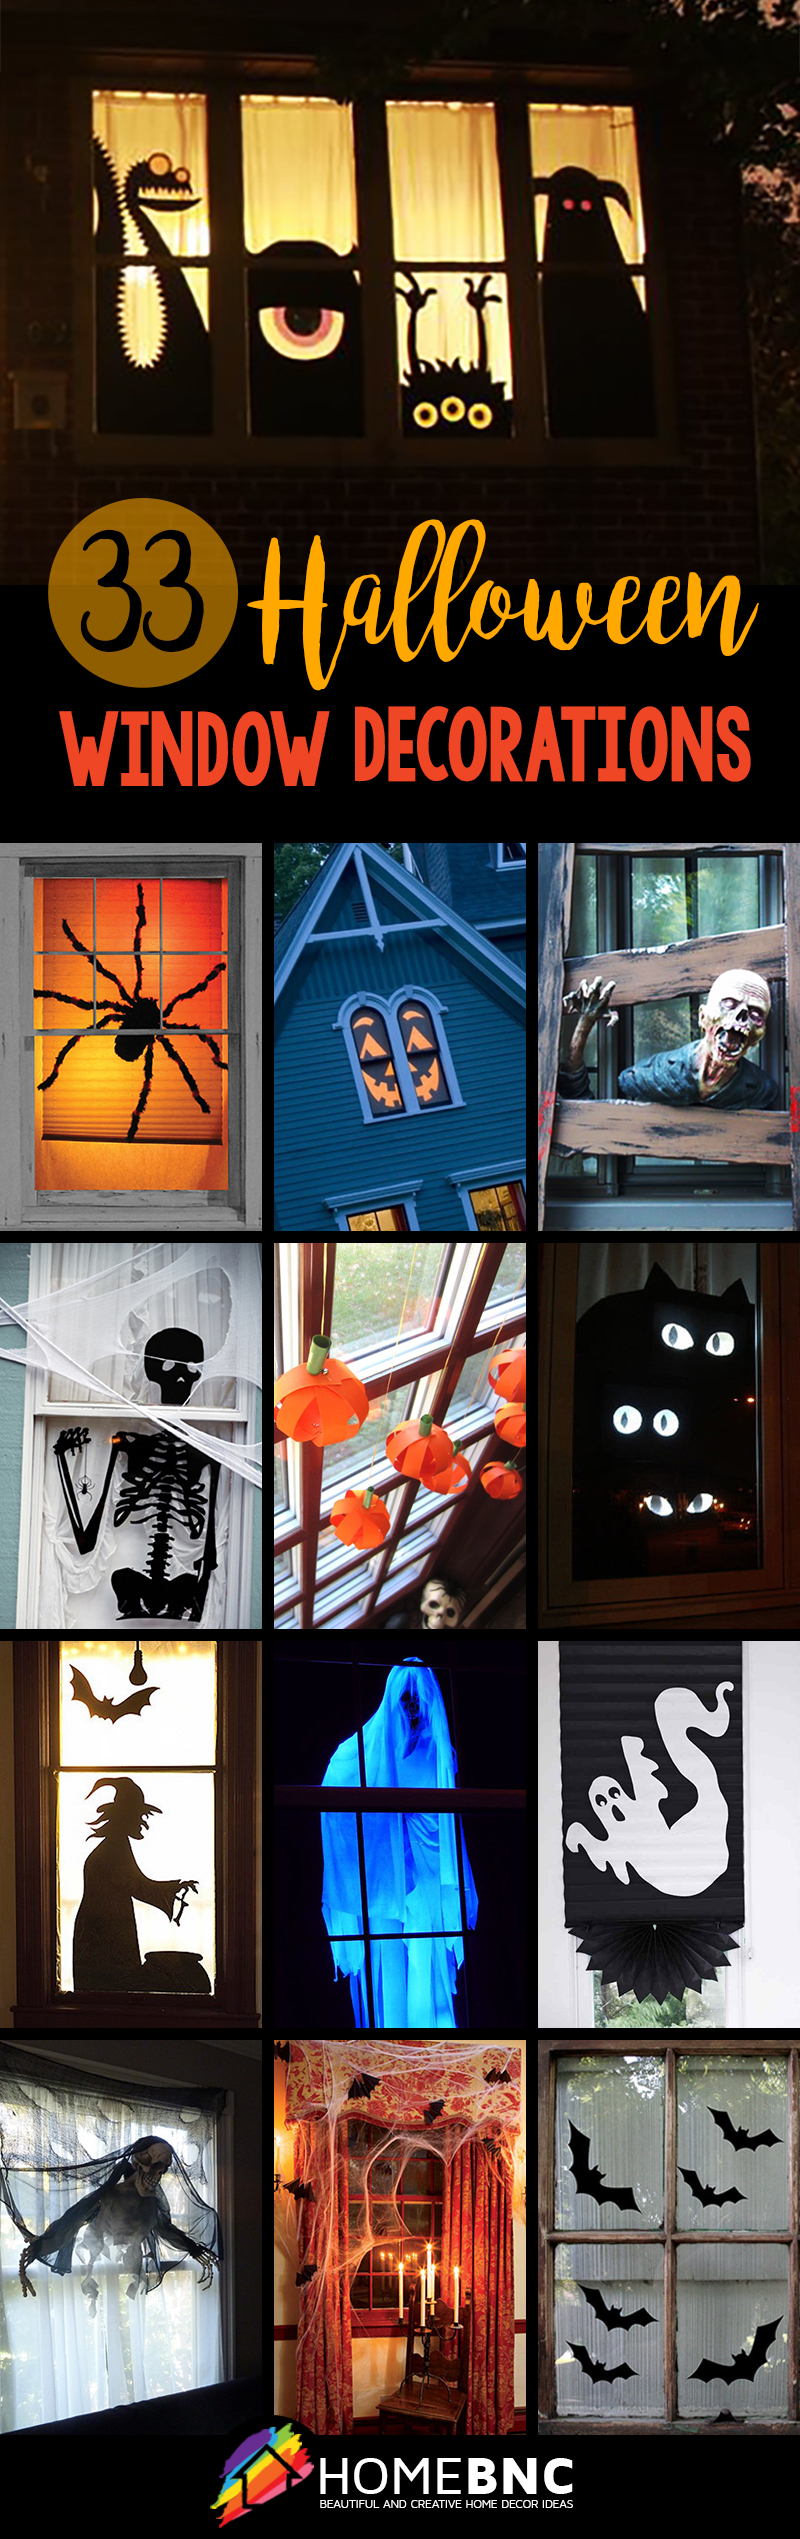 halloween window decorations - Halloween Window Decor